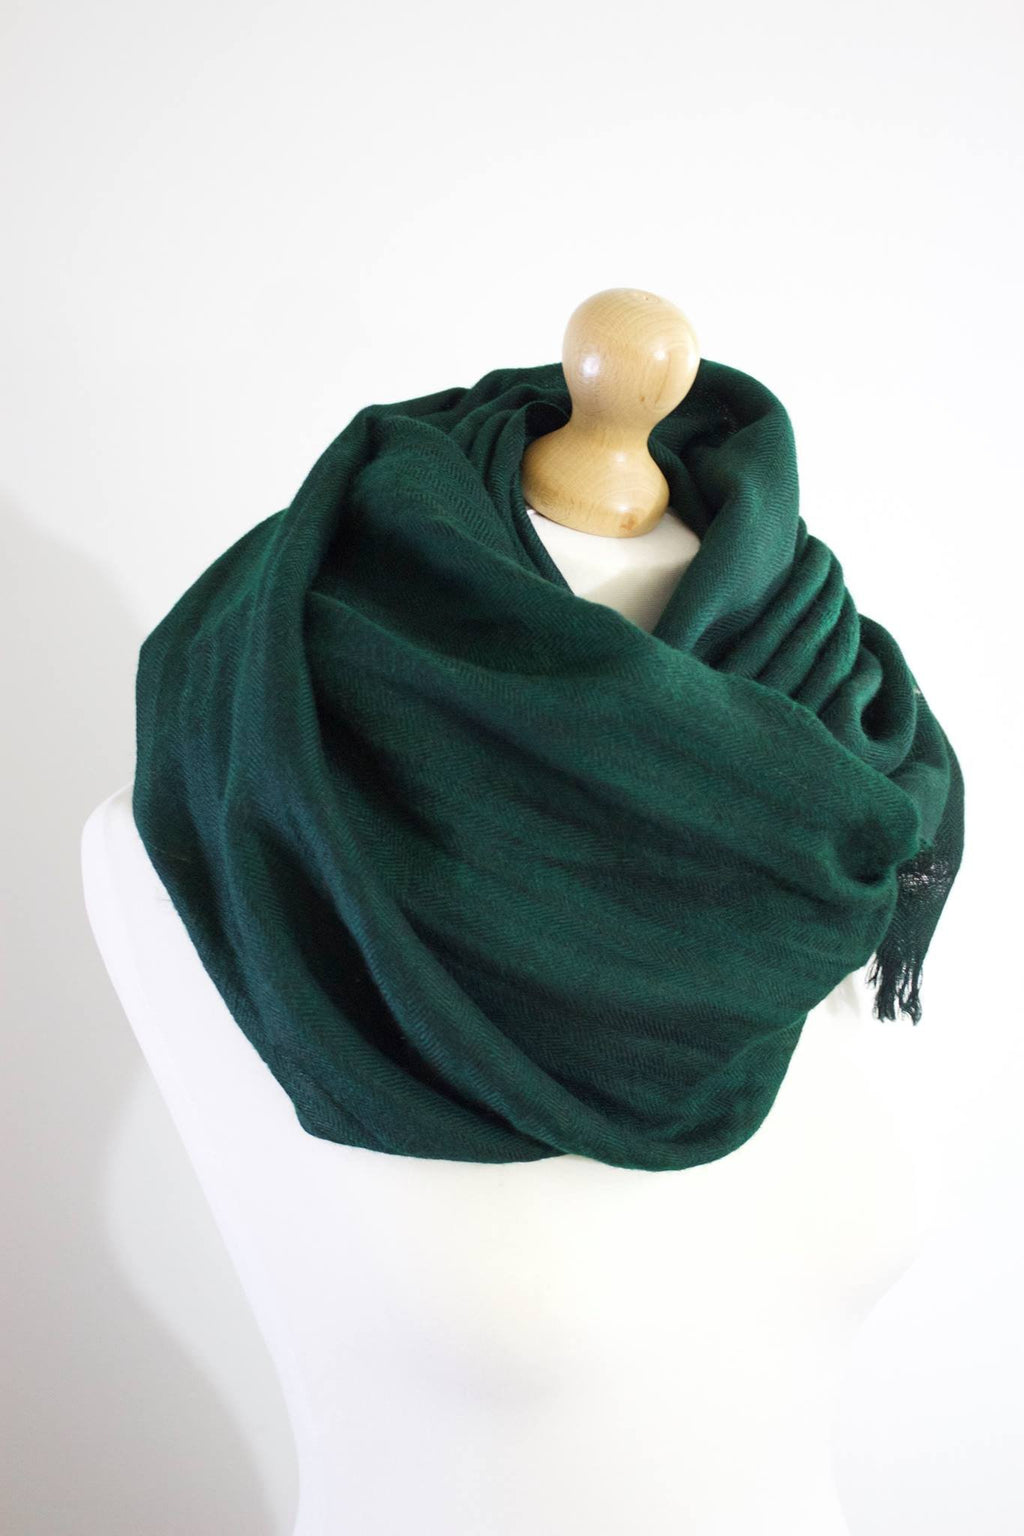 Pure 100% Wool, Green Cedar, Soft Pattern,Stole